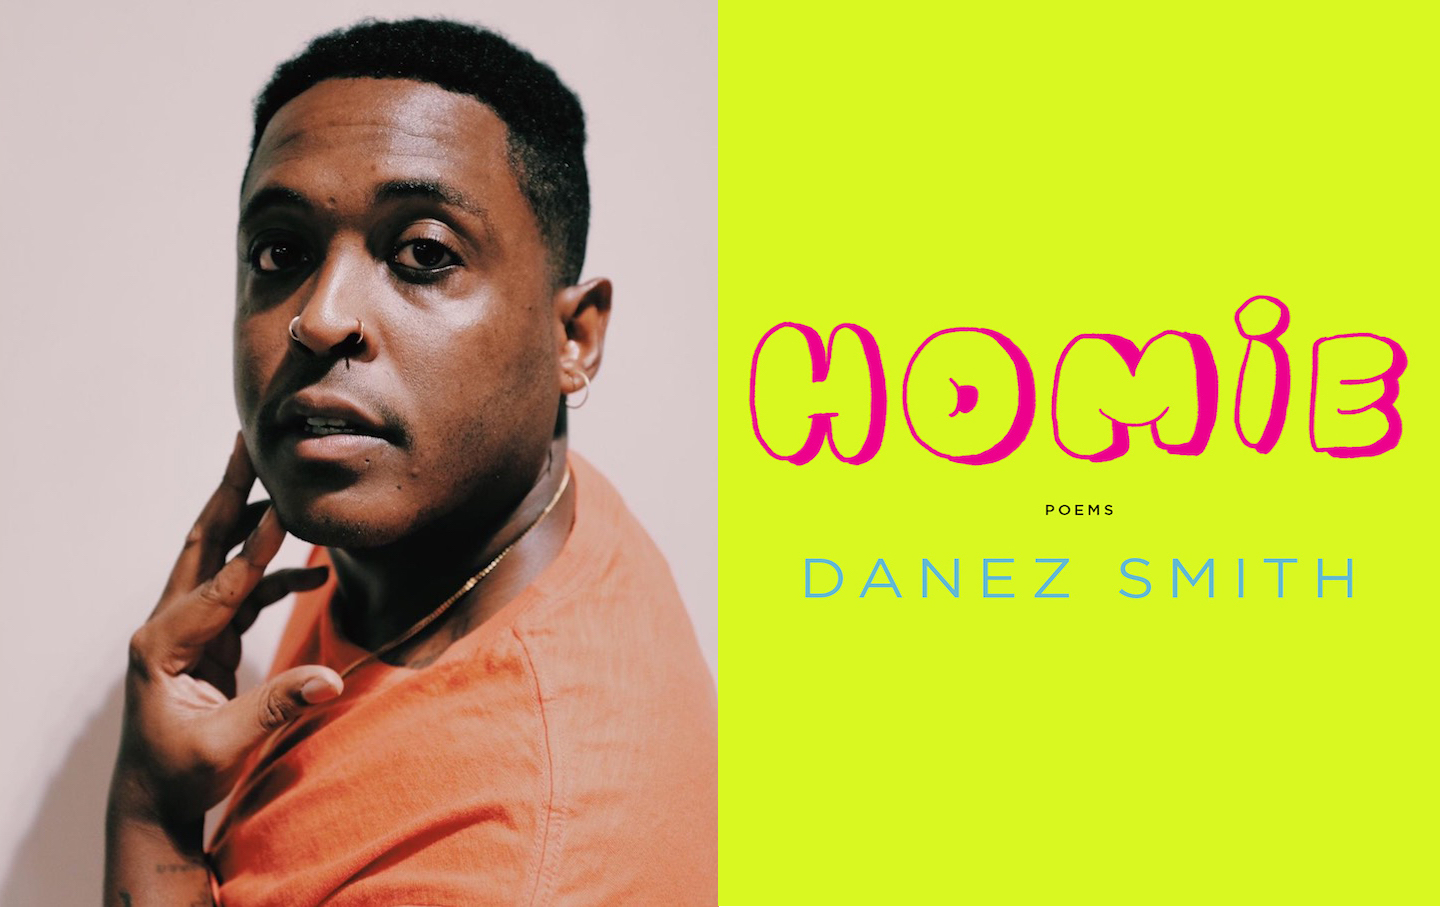 DANEZ SPLIT [PHOTO BY TABIA YAPP]